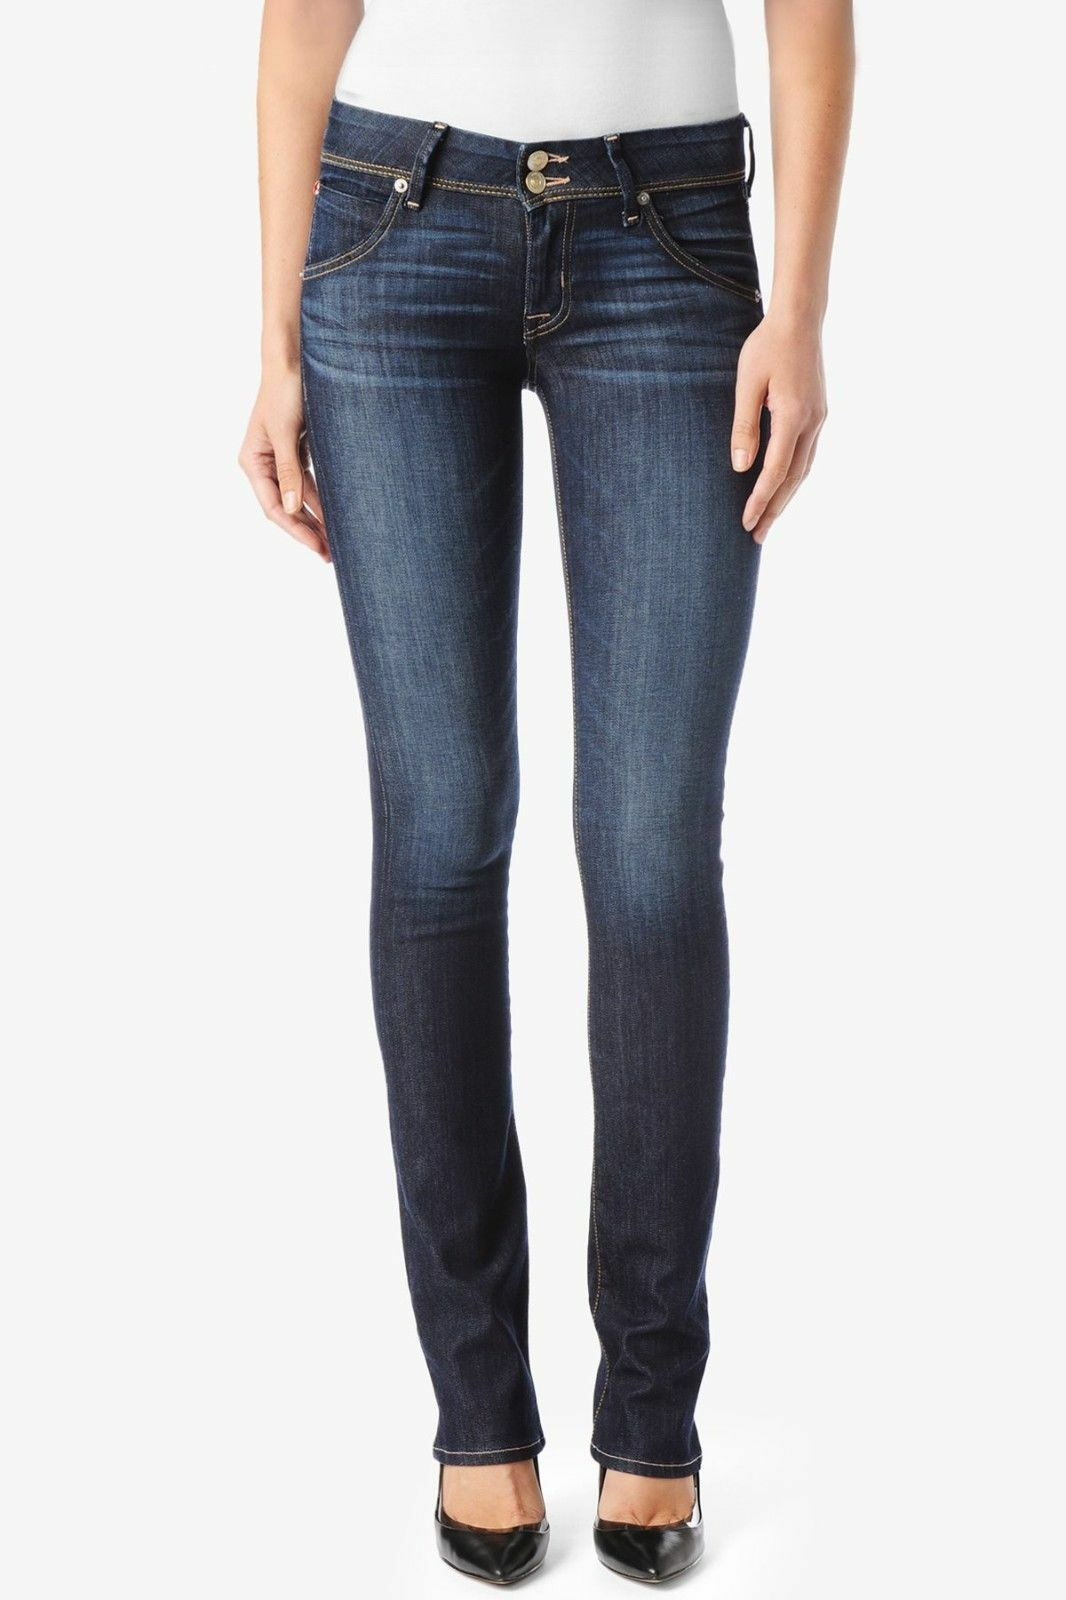 Top 10 Designer Jeans for Women | eBay